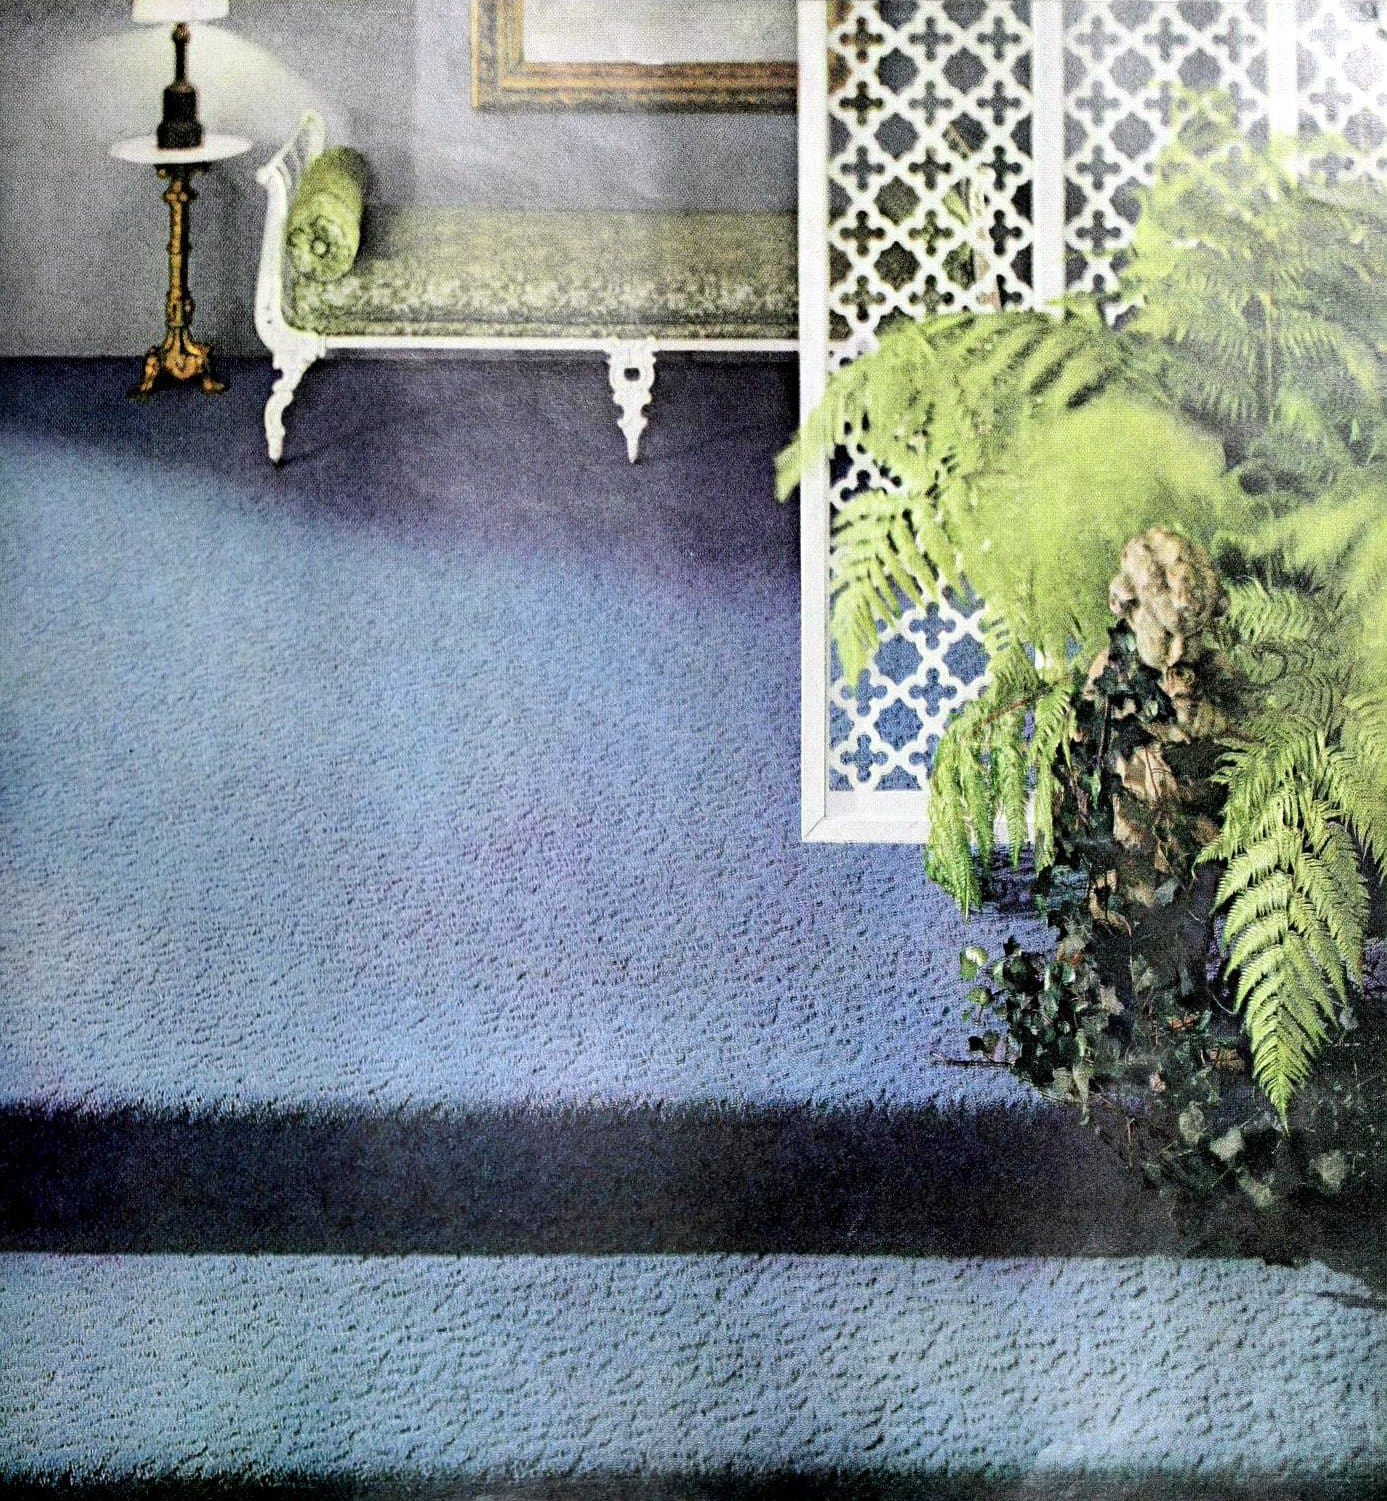 Vintage blue textured carpet on stairs and sitting area (1956)